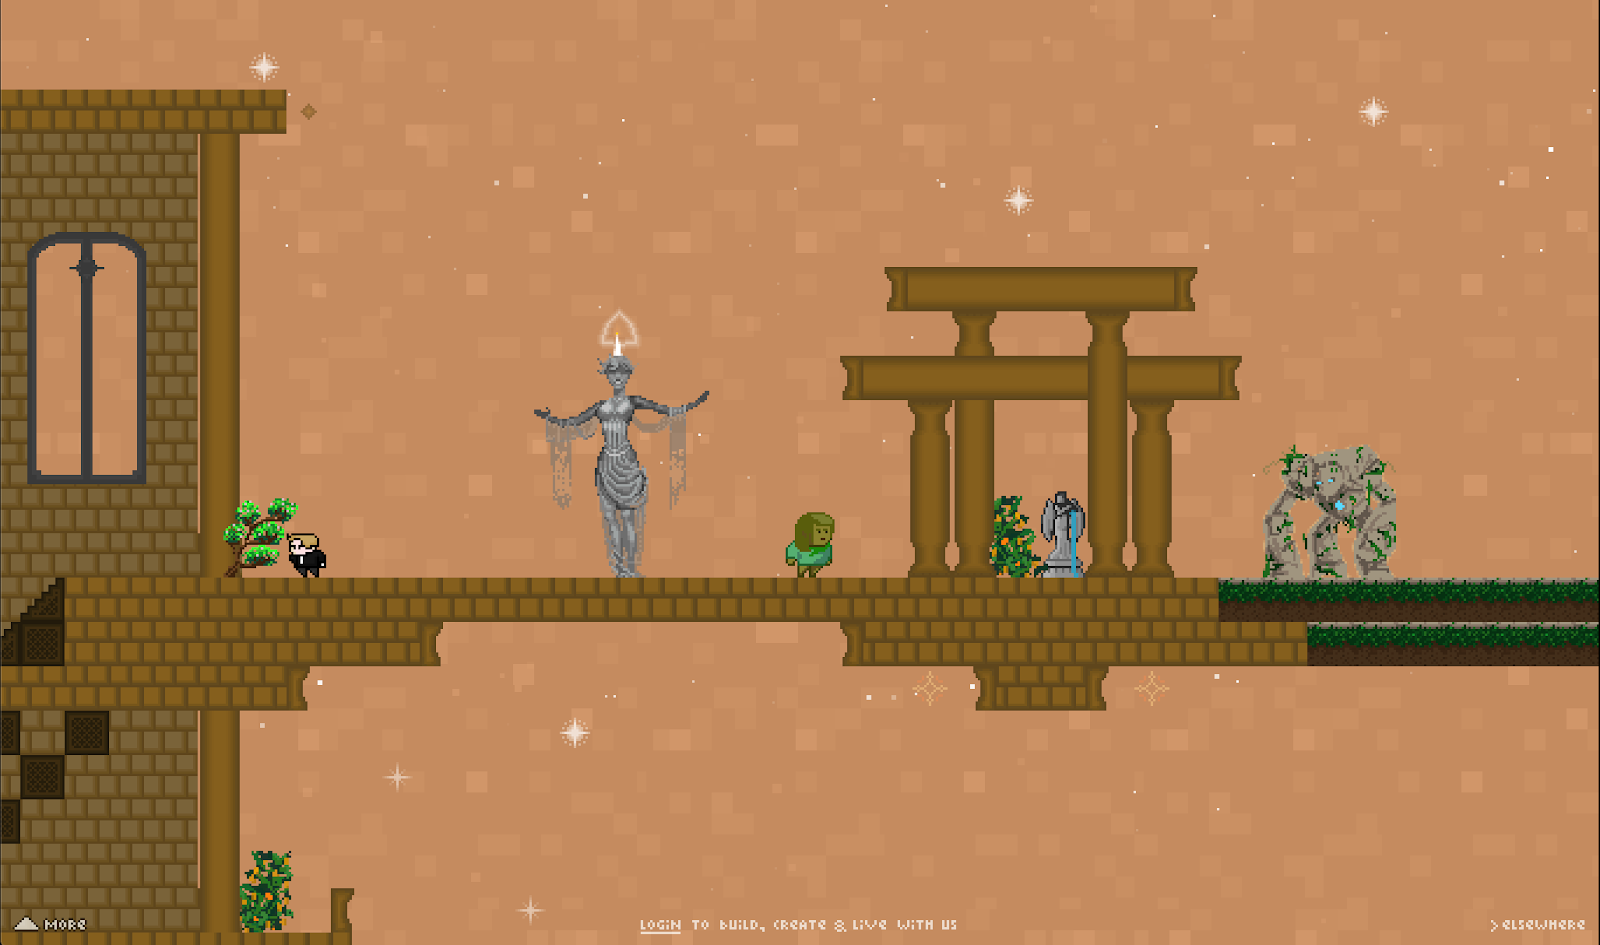 statues and mansions in Manyland